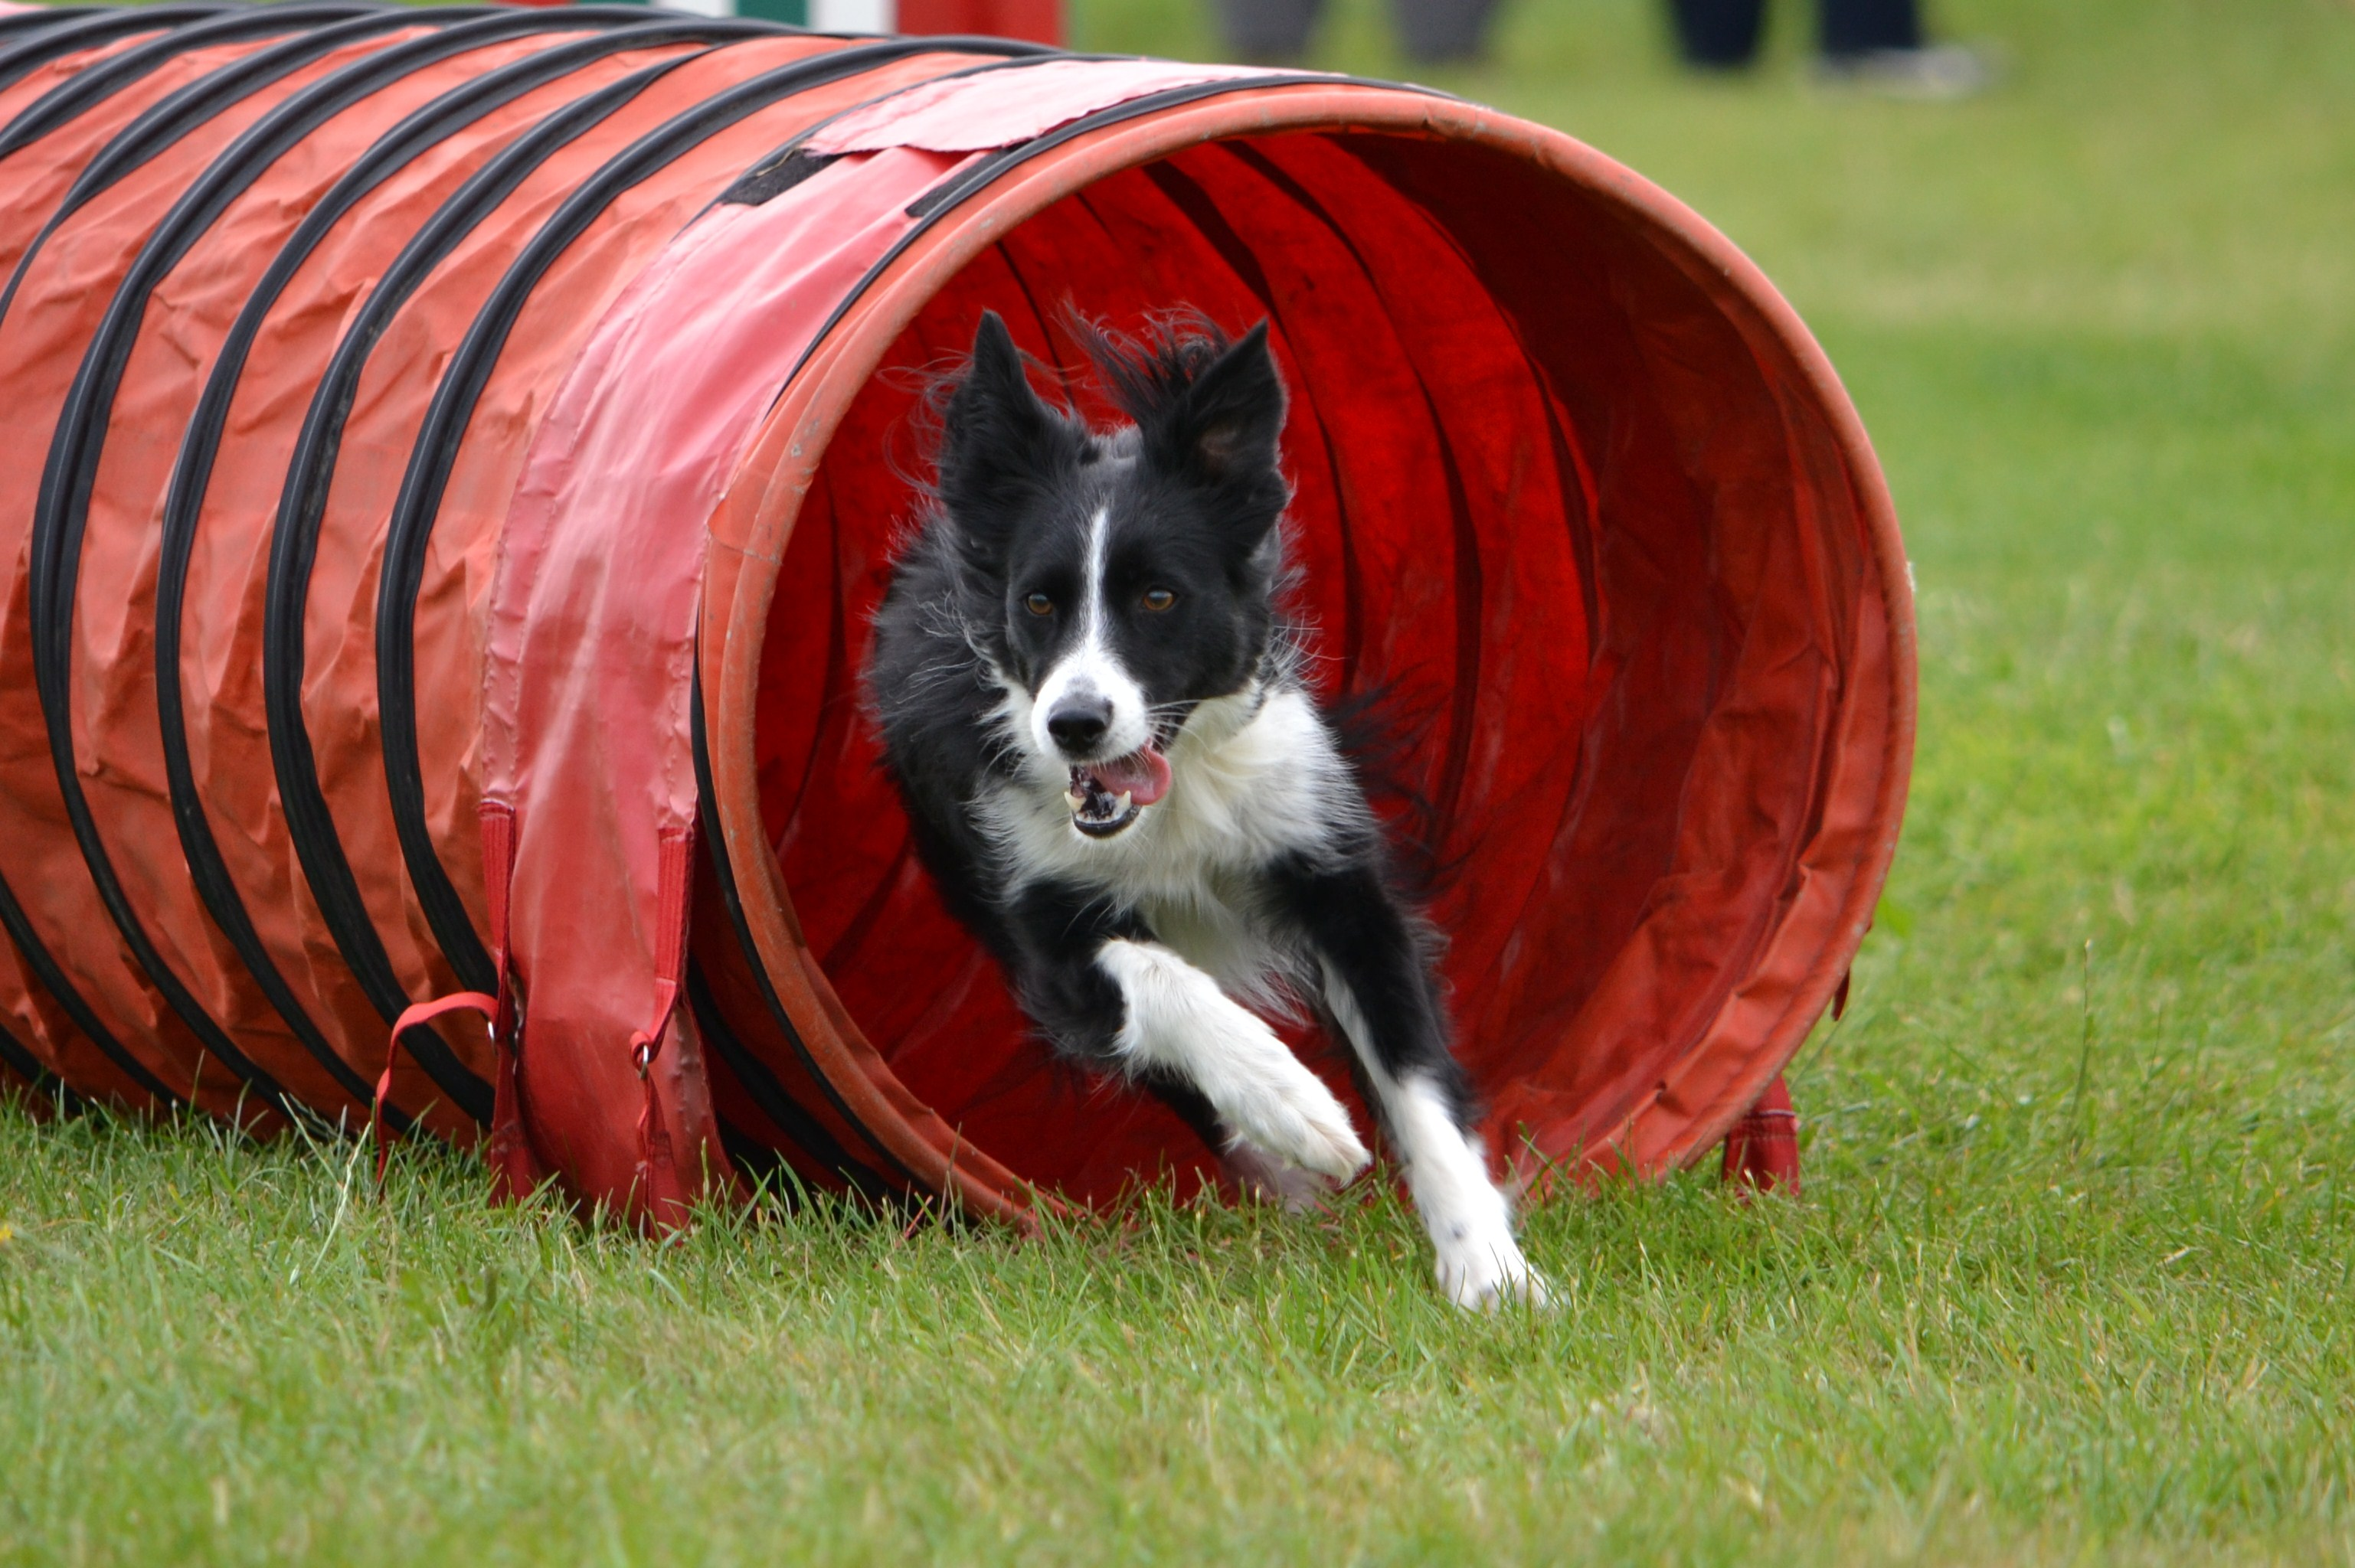 Fun agility class</br>on Sat 24 August 2019</br>Starts at 10:00